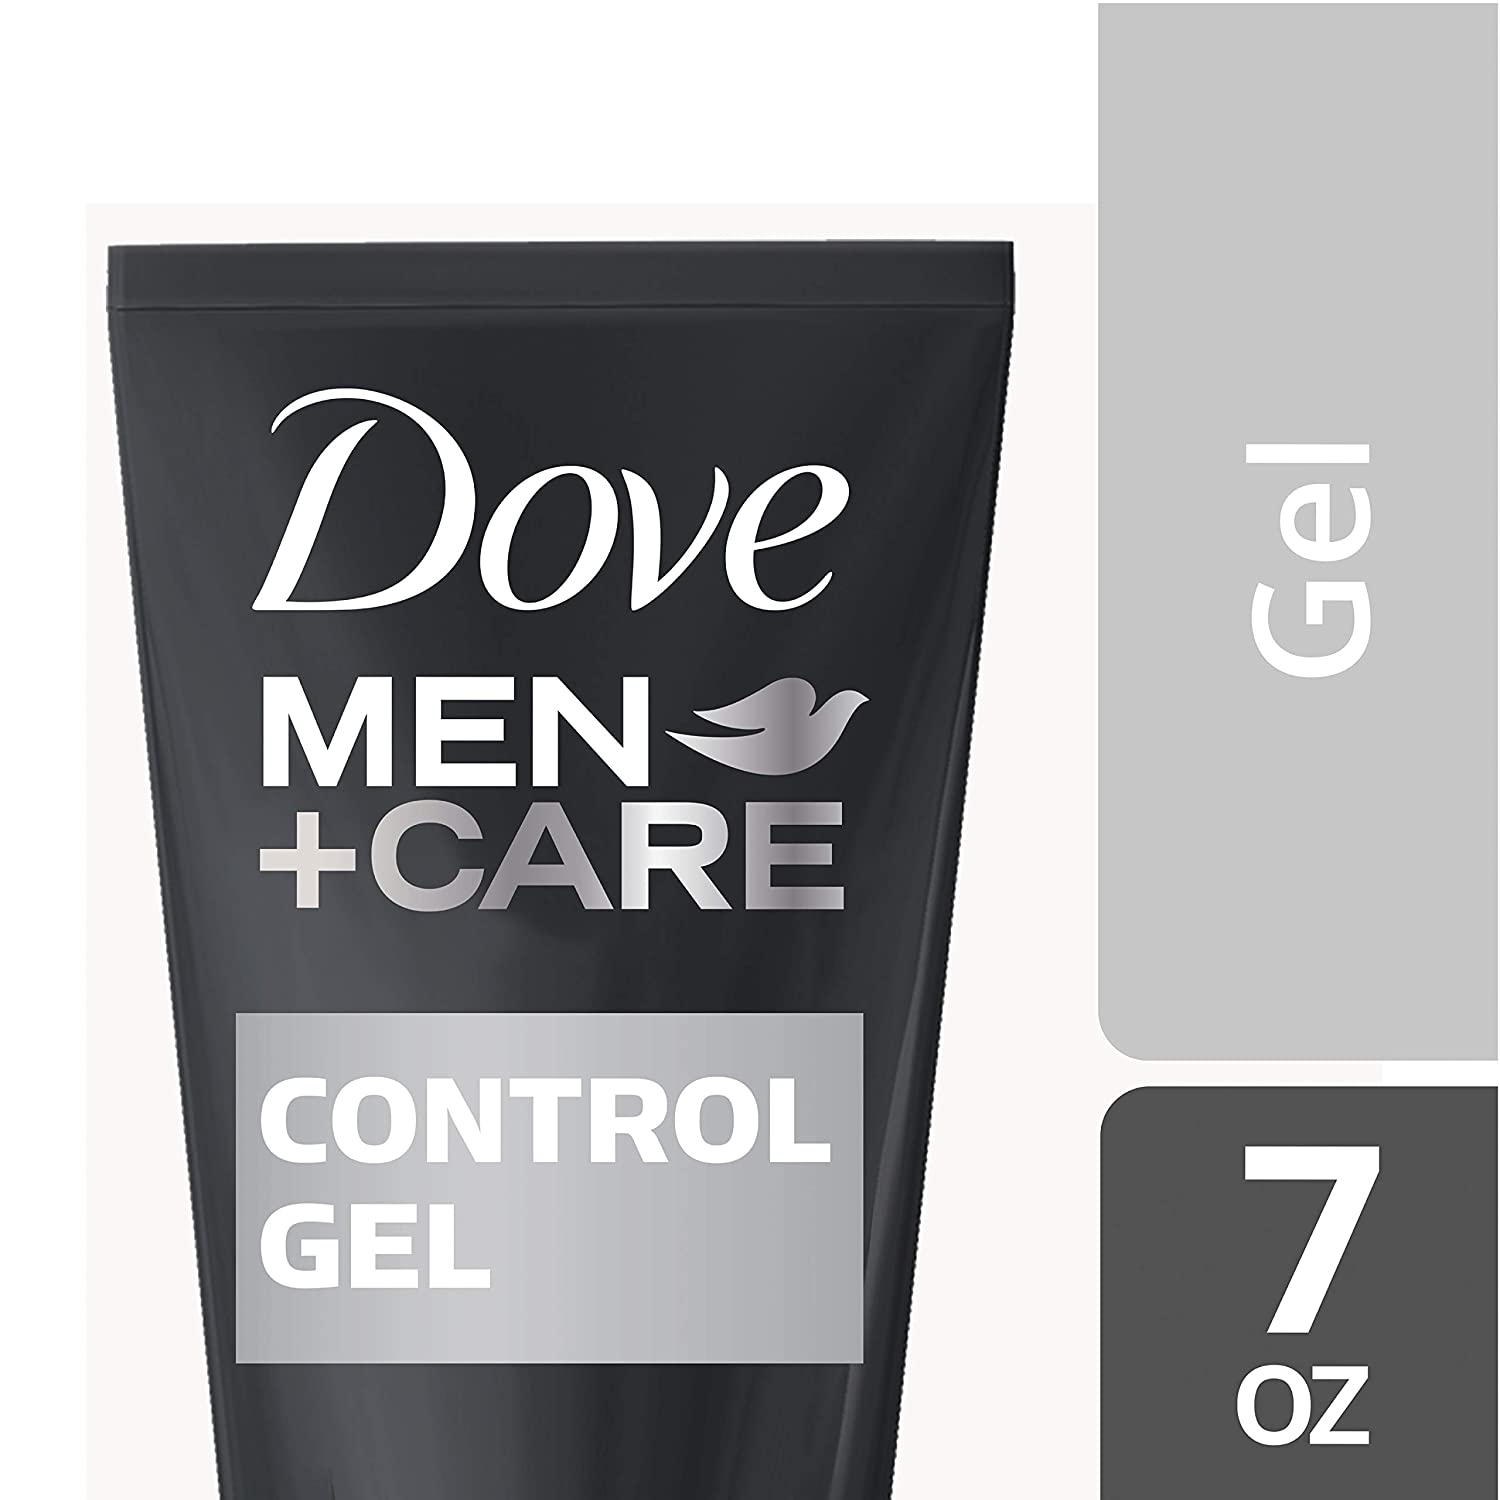 Dove Men+Care Hair Styling, Controlling Gel, 7 oz